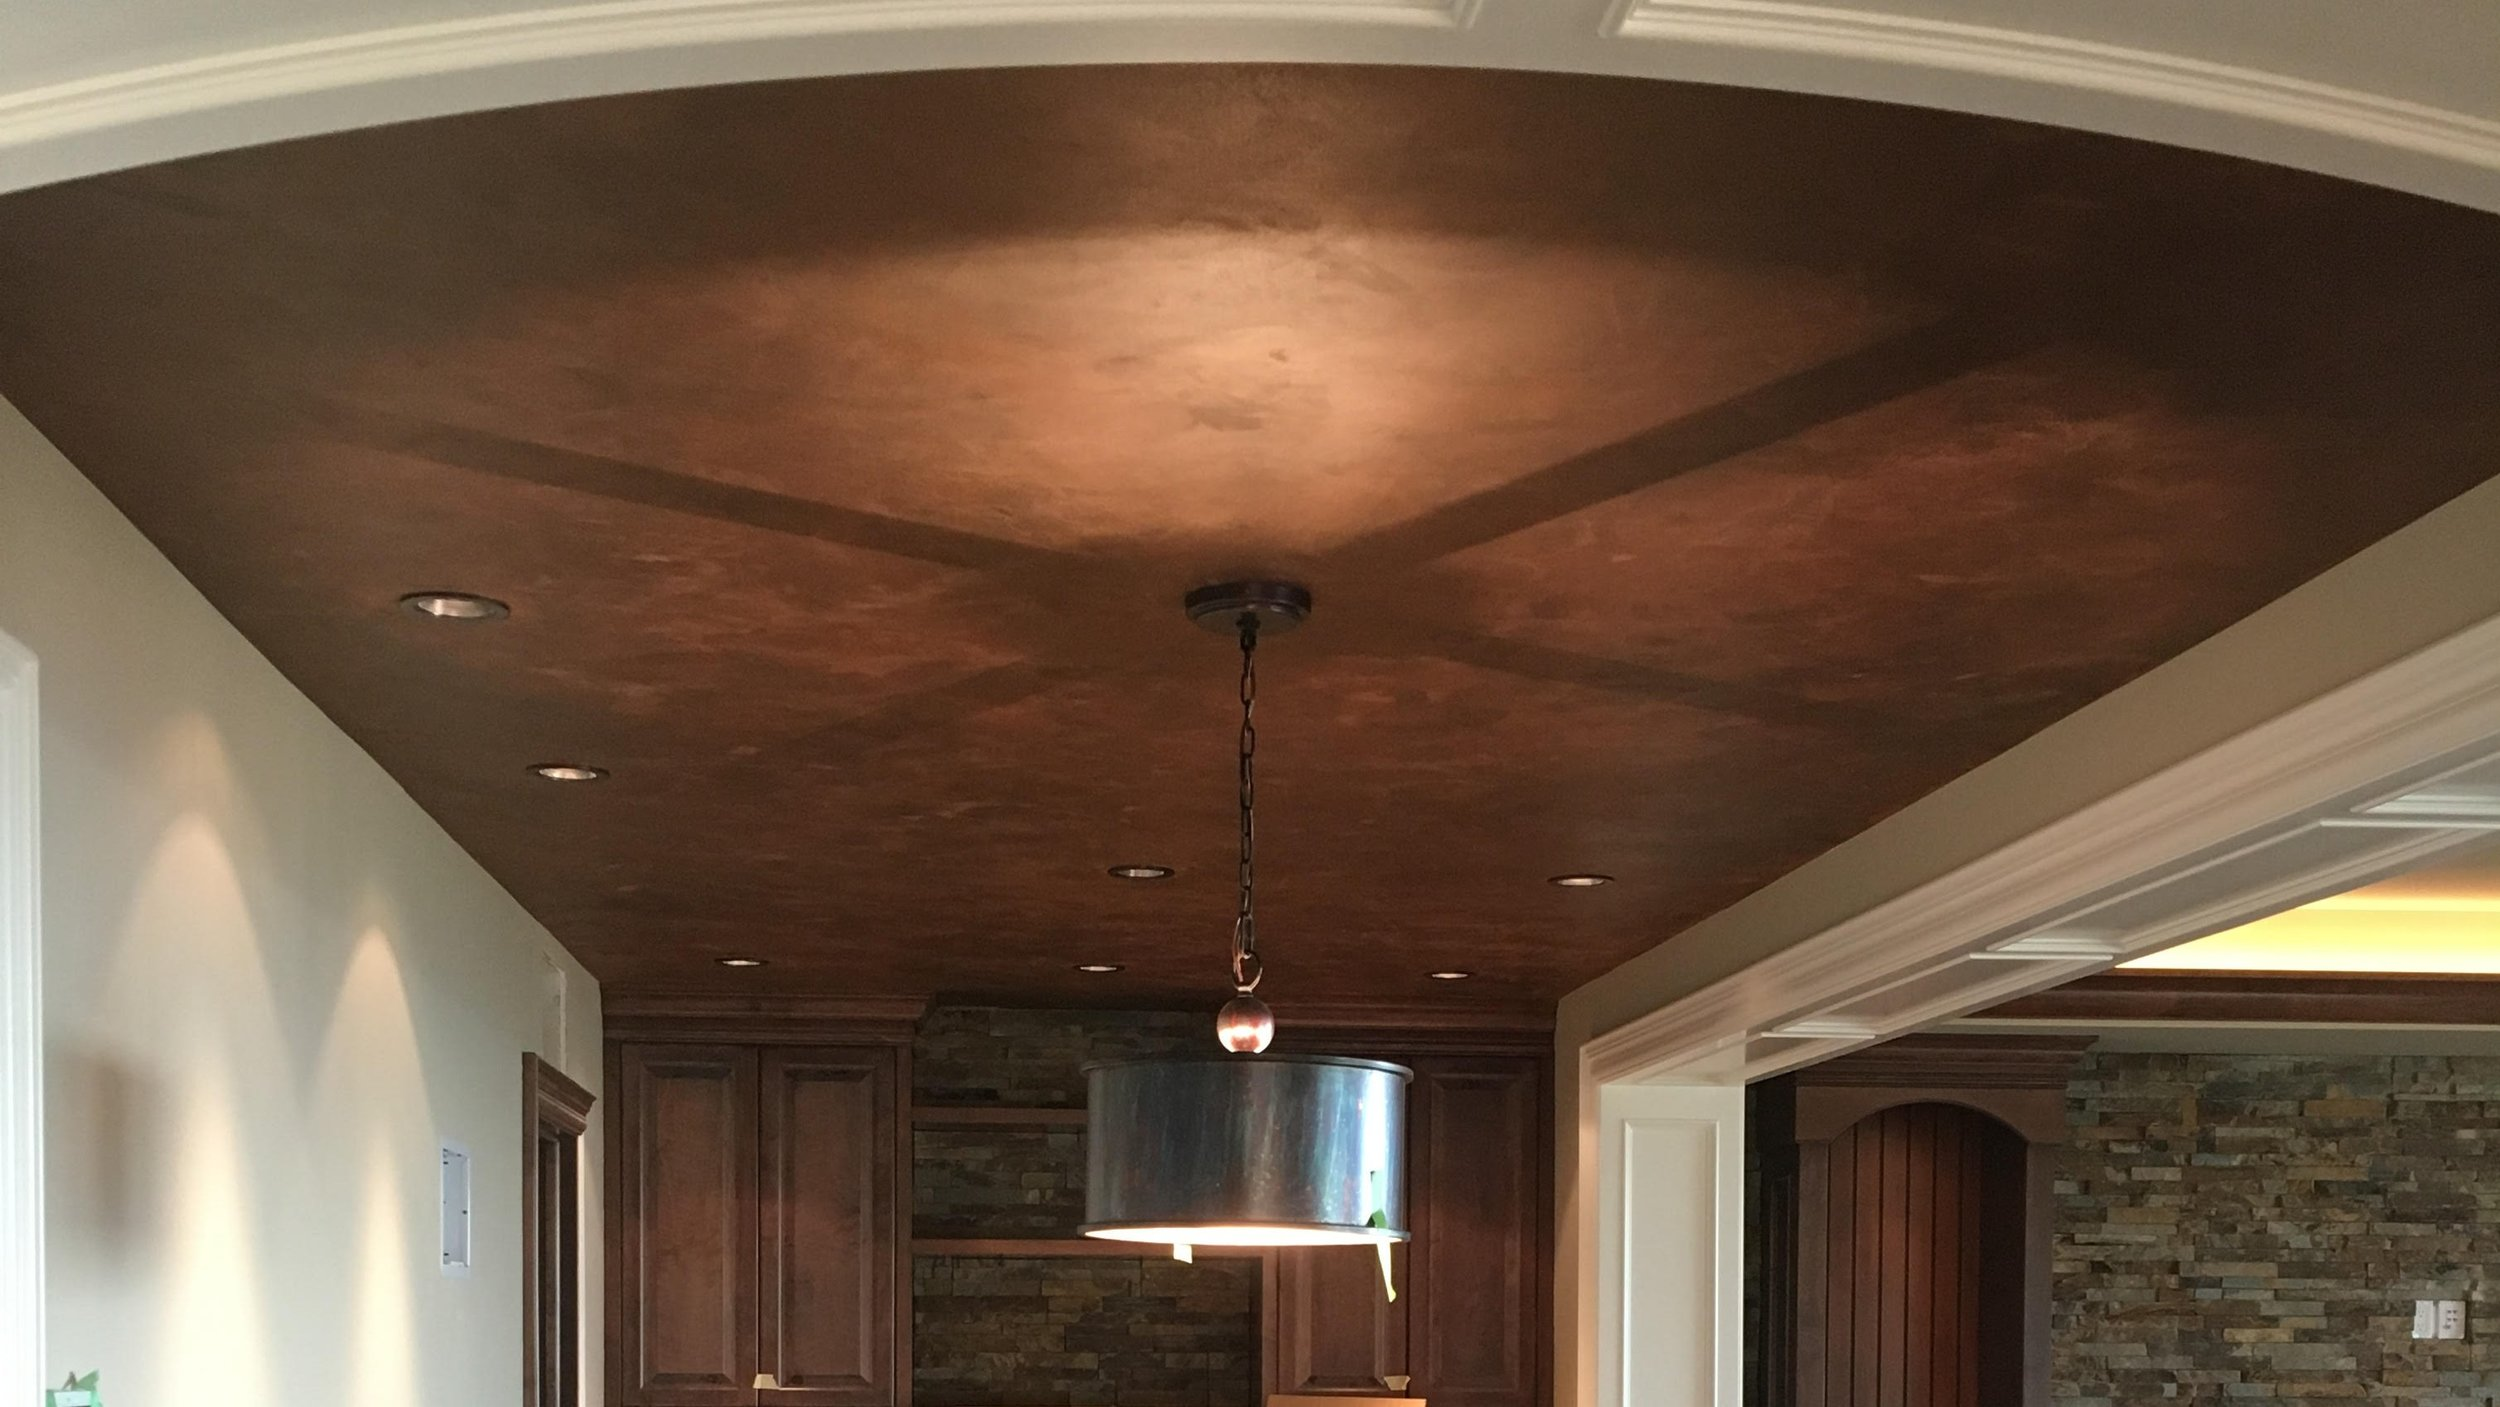 An aged copper finish that can combine mediums and textures such as leaf, paints, glazes, and plasters to create dimension and variation. Stunning on ceilings and decorative items like light fixtures and other accents to give the appearance of antique copper.